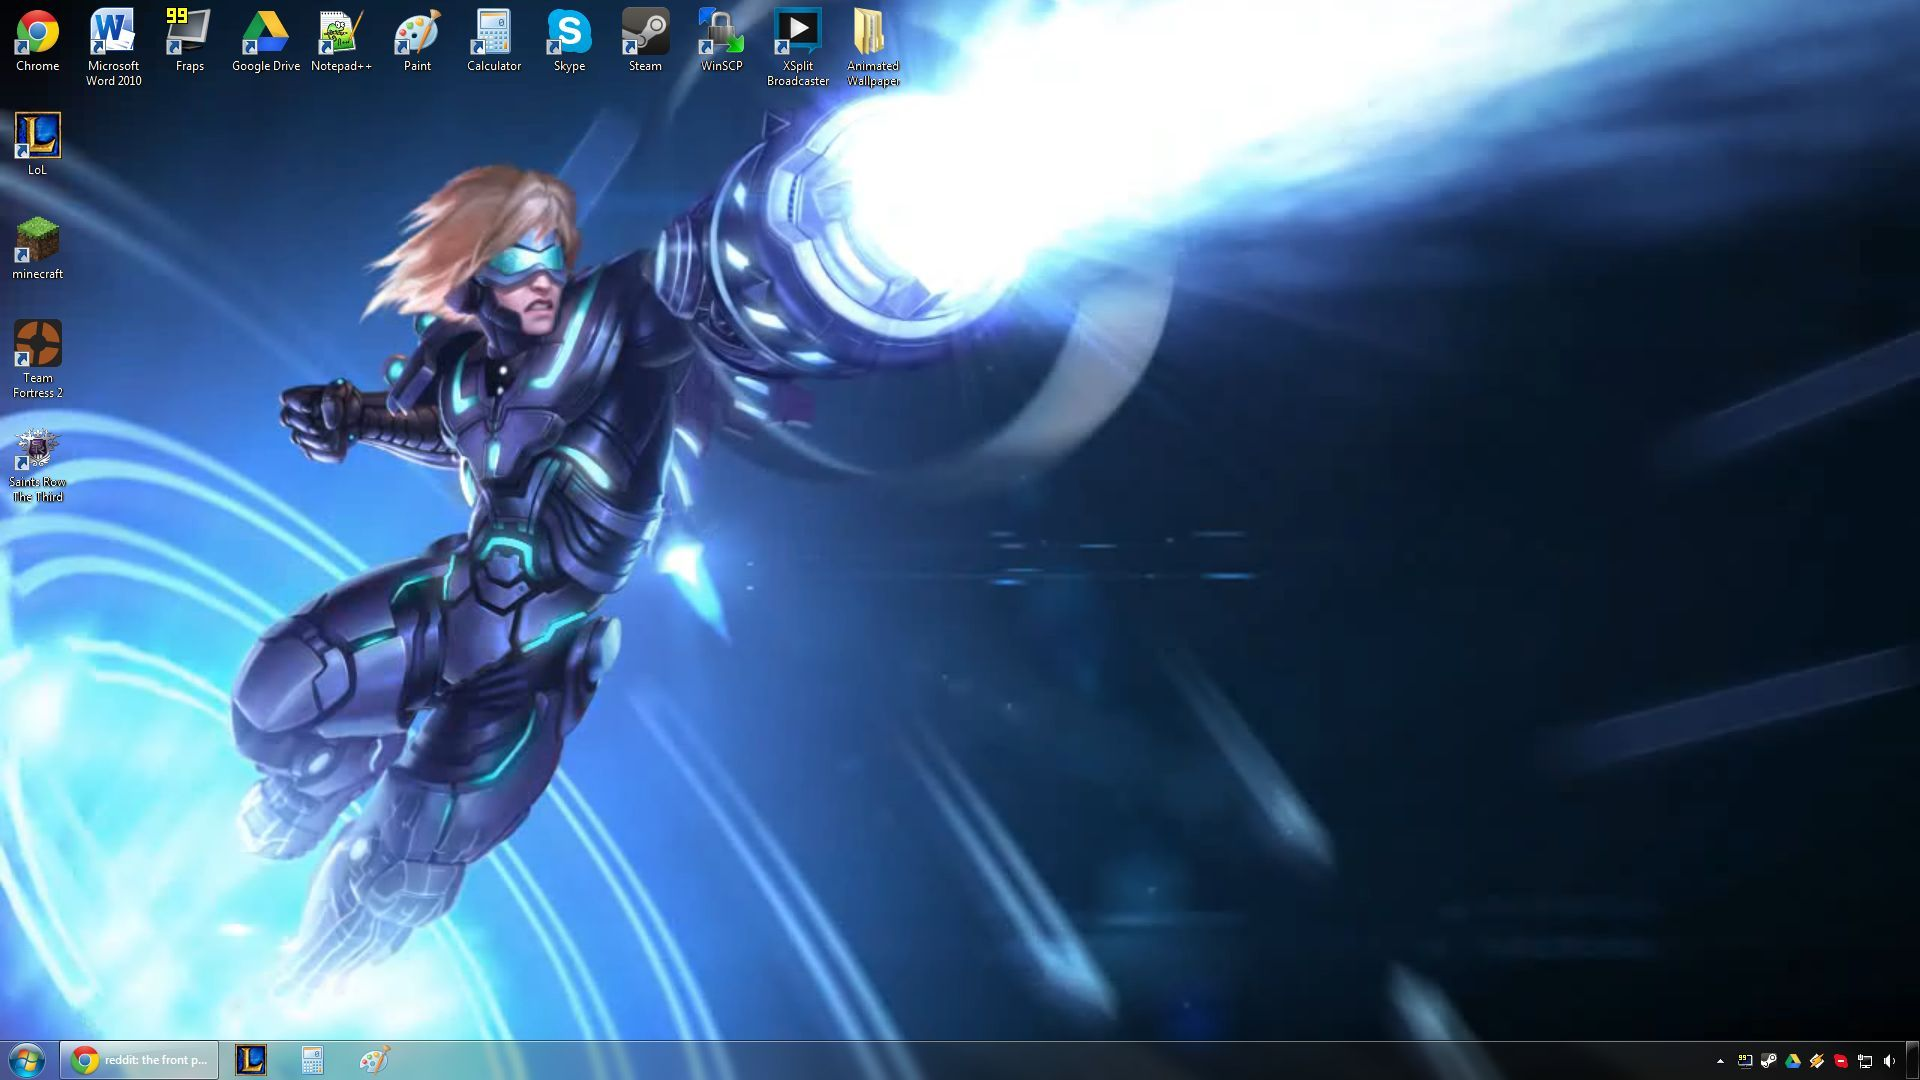 Inspiring League Of Legends Live Wallpaper Desktop